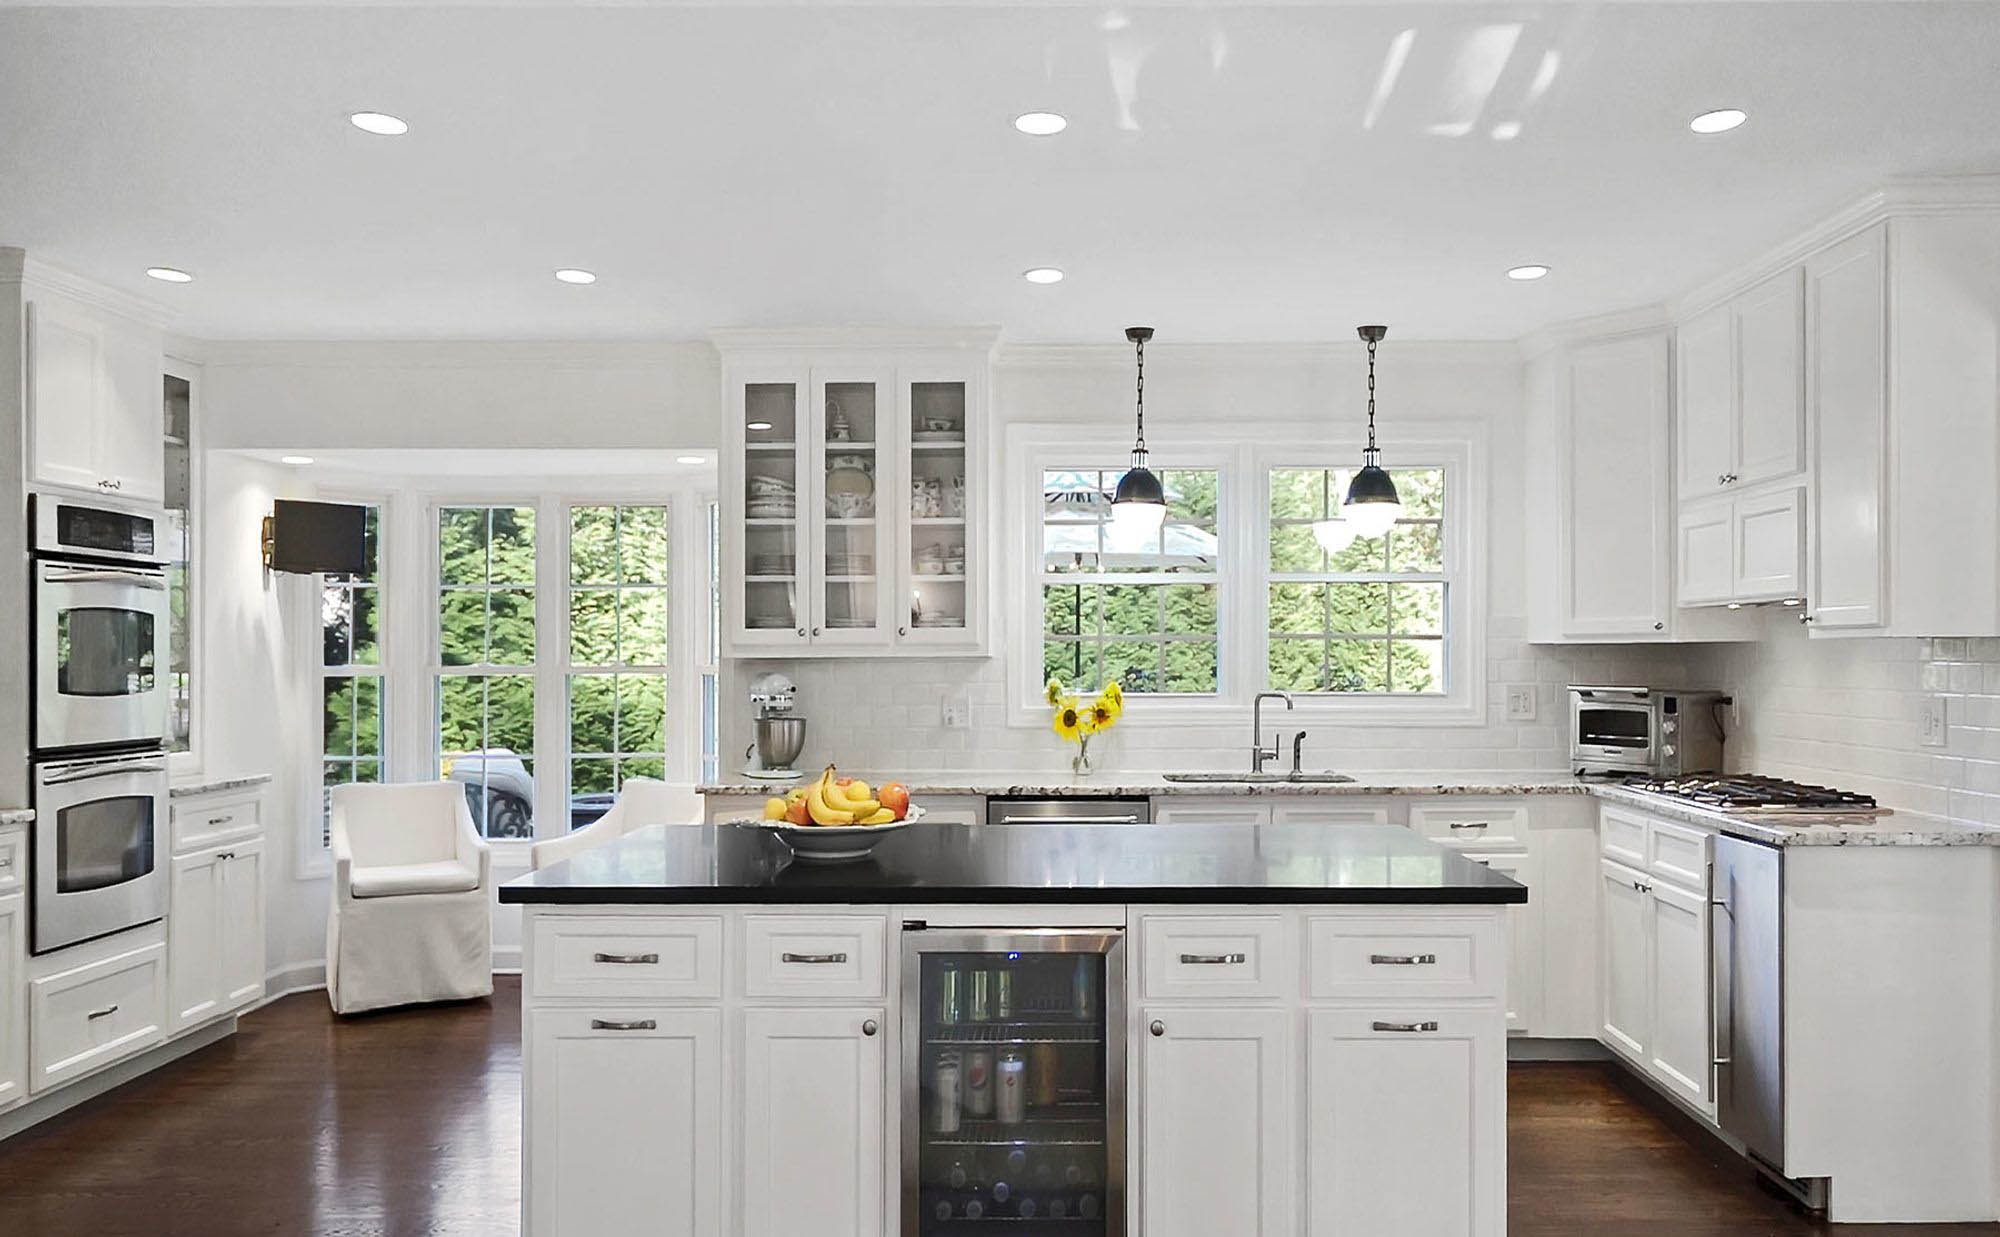 White granite and black quartz countertops with white cabinets and subway tile backsplash.